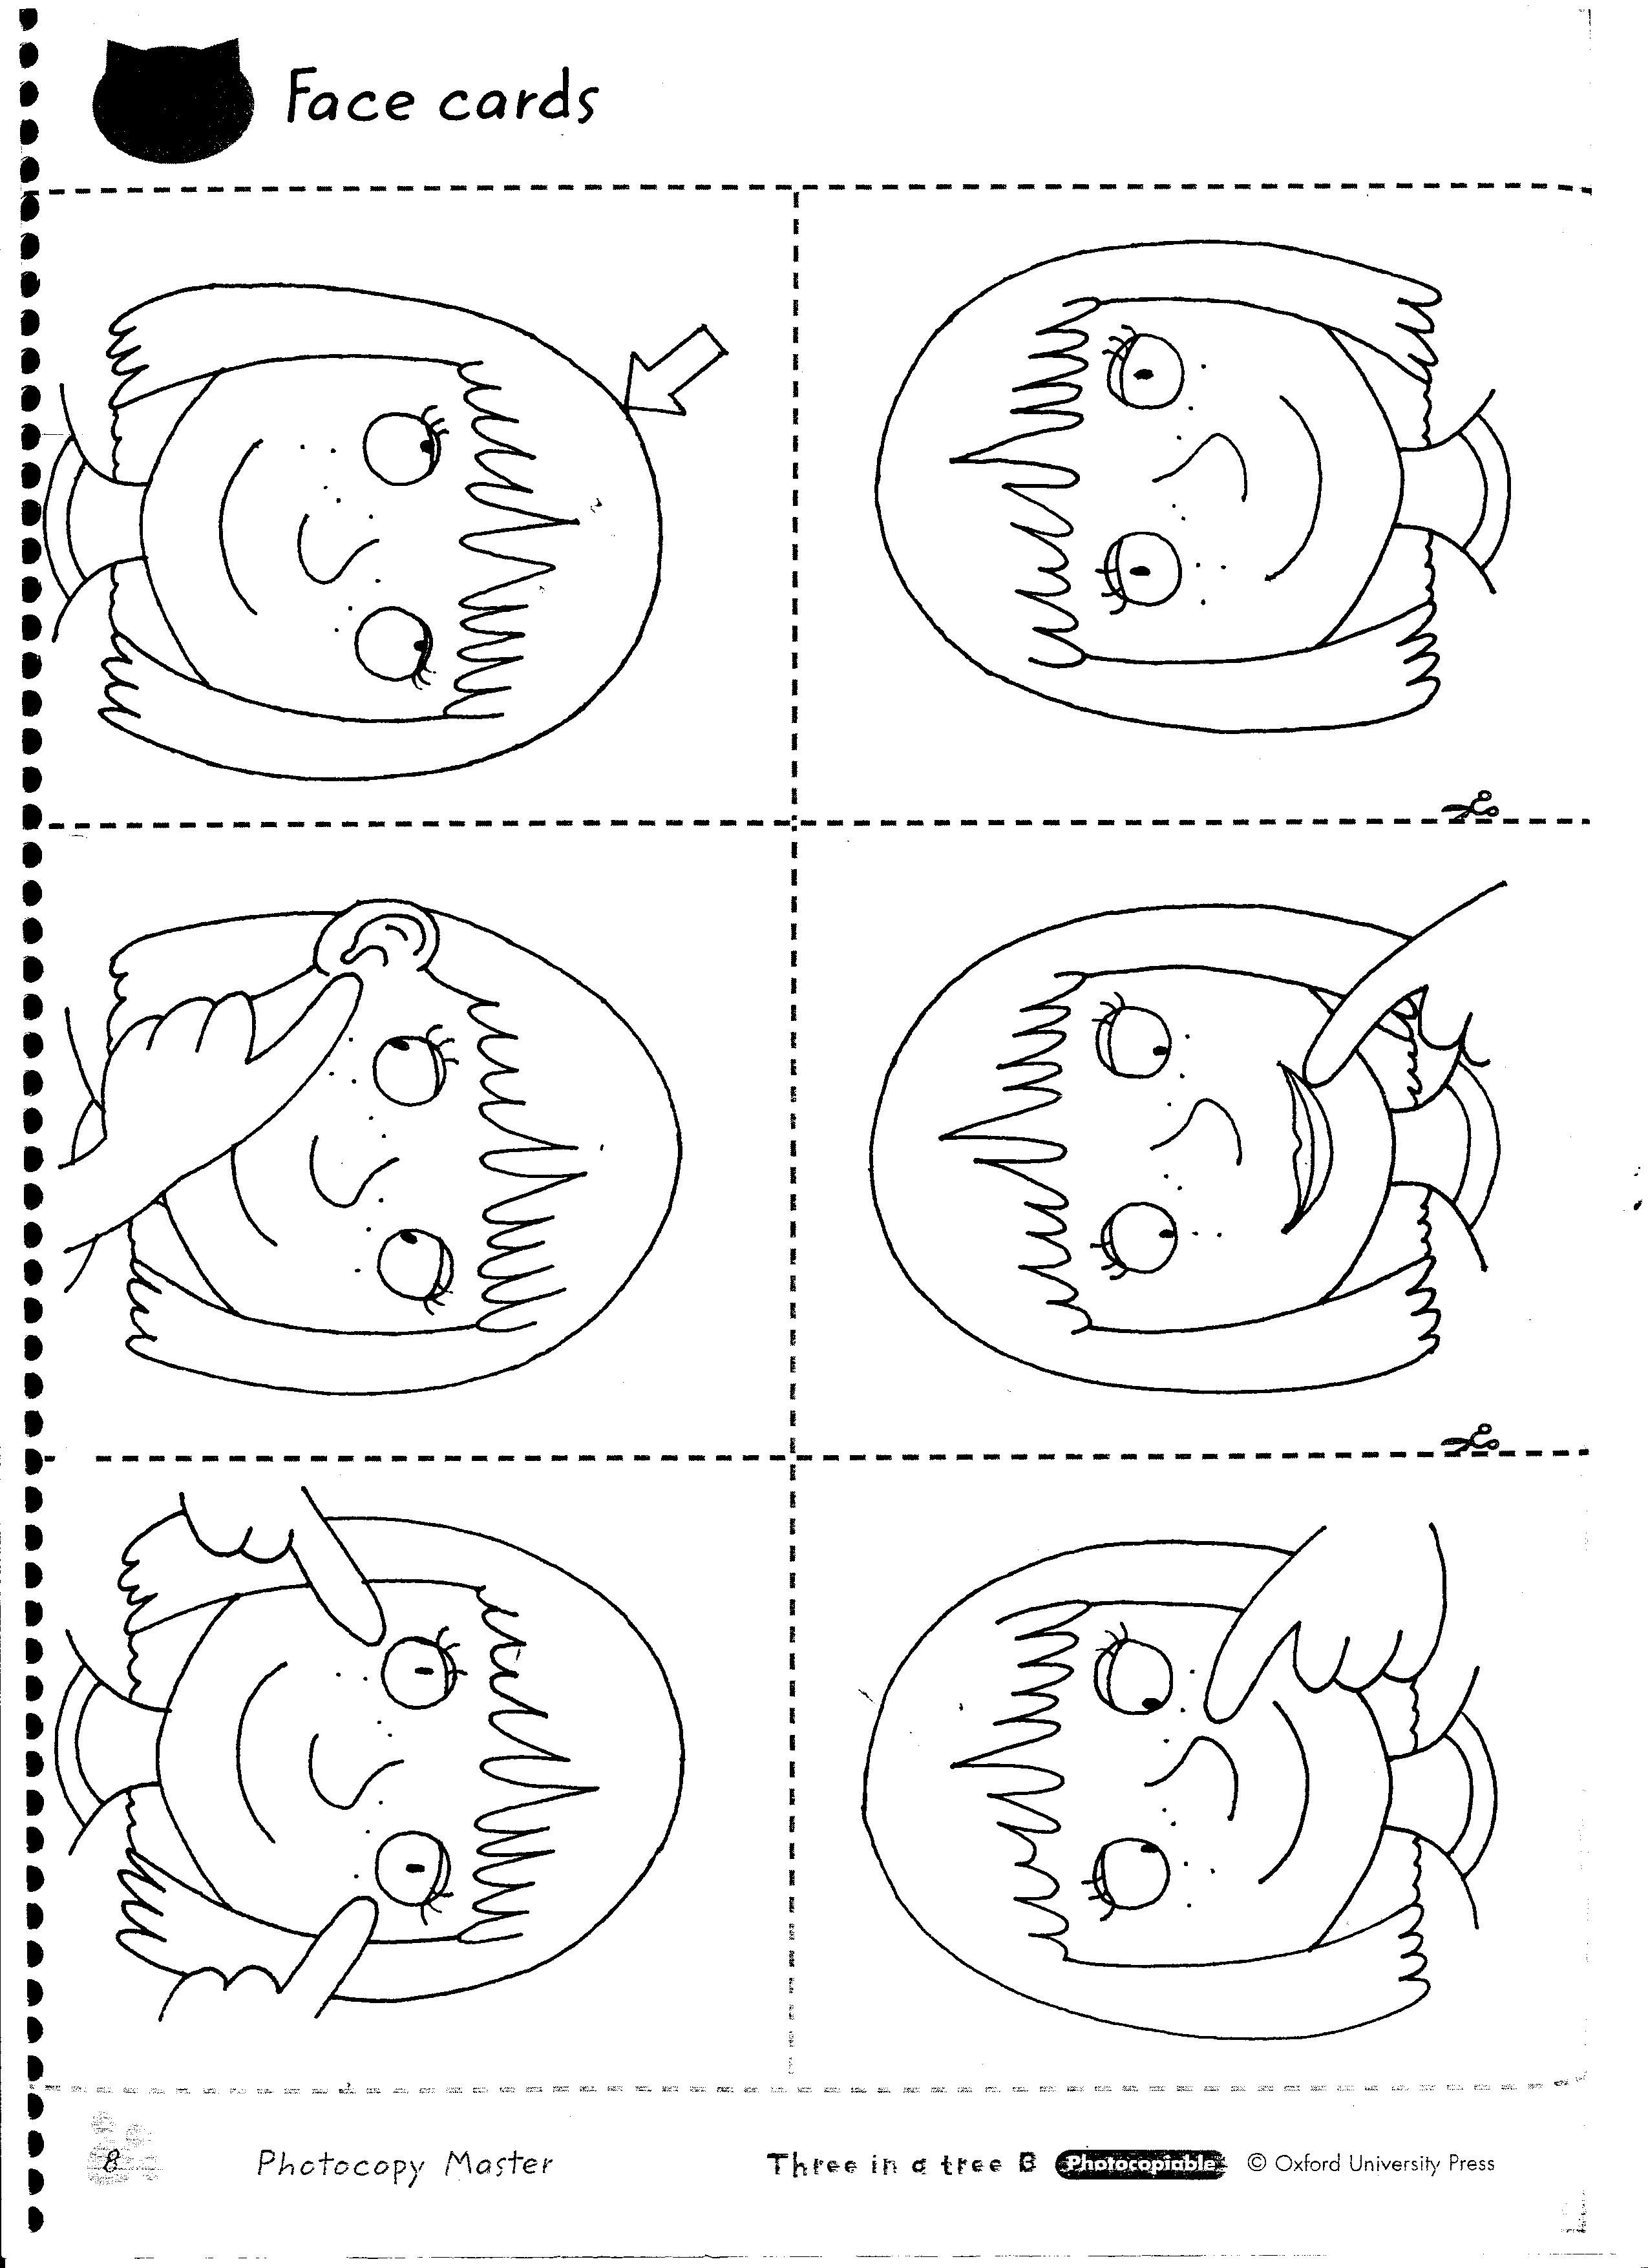 Body Parts Coloring Pages For Kids